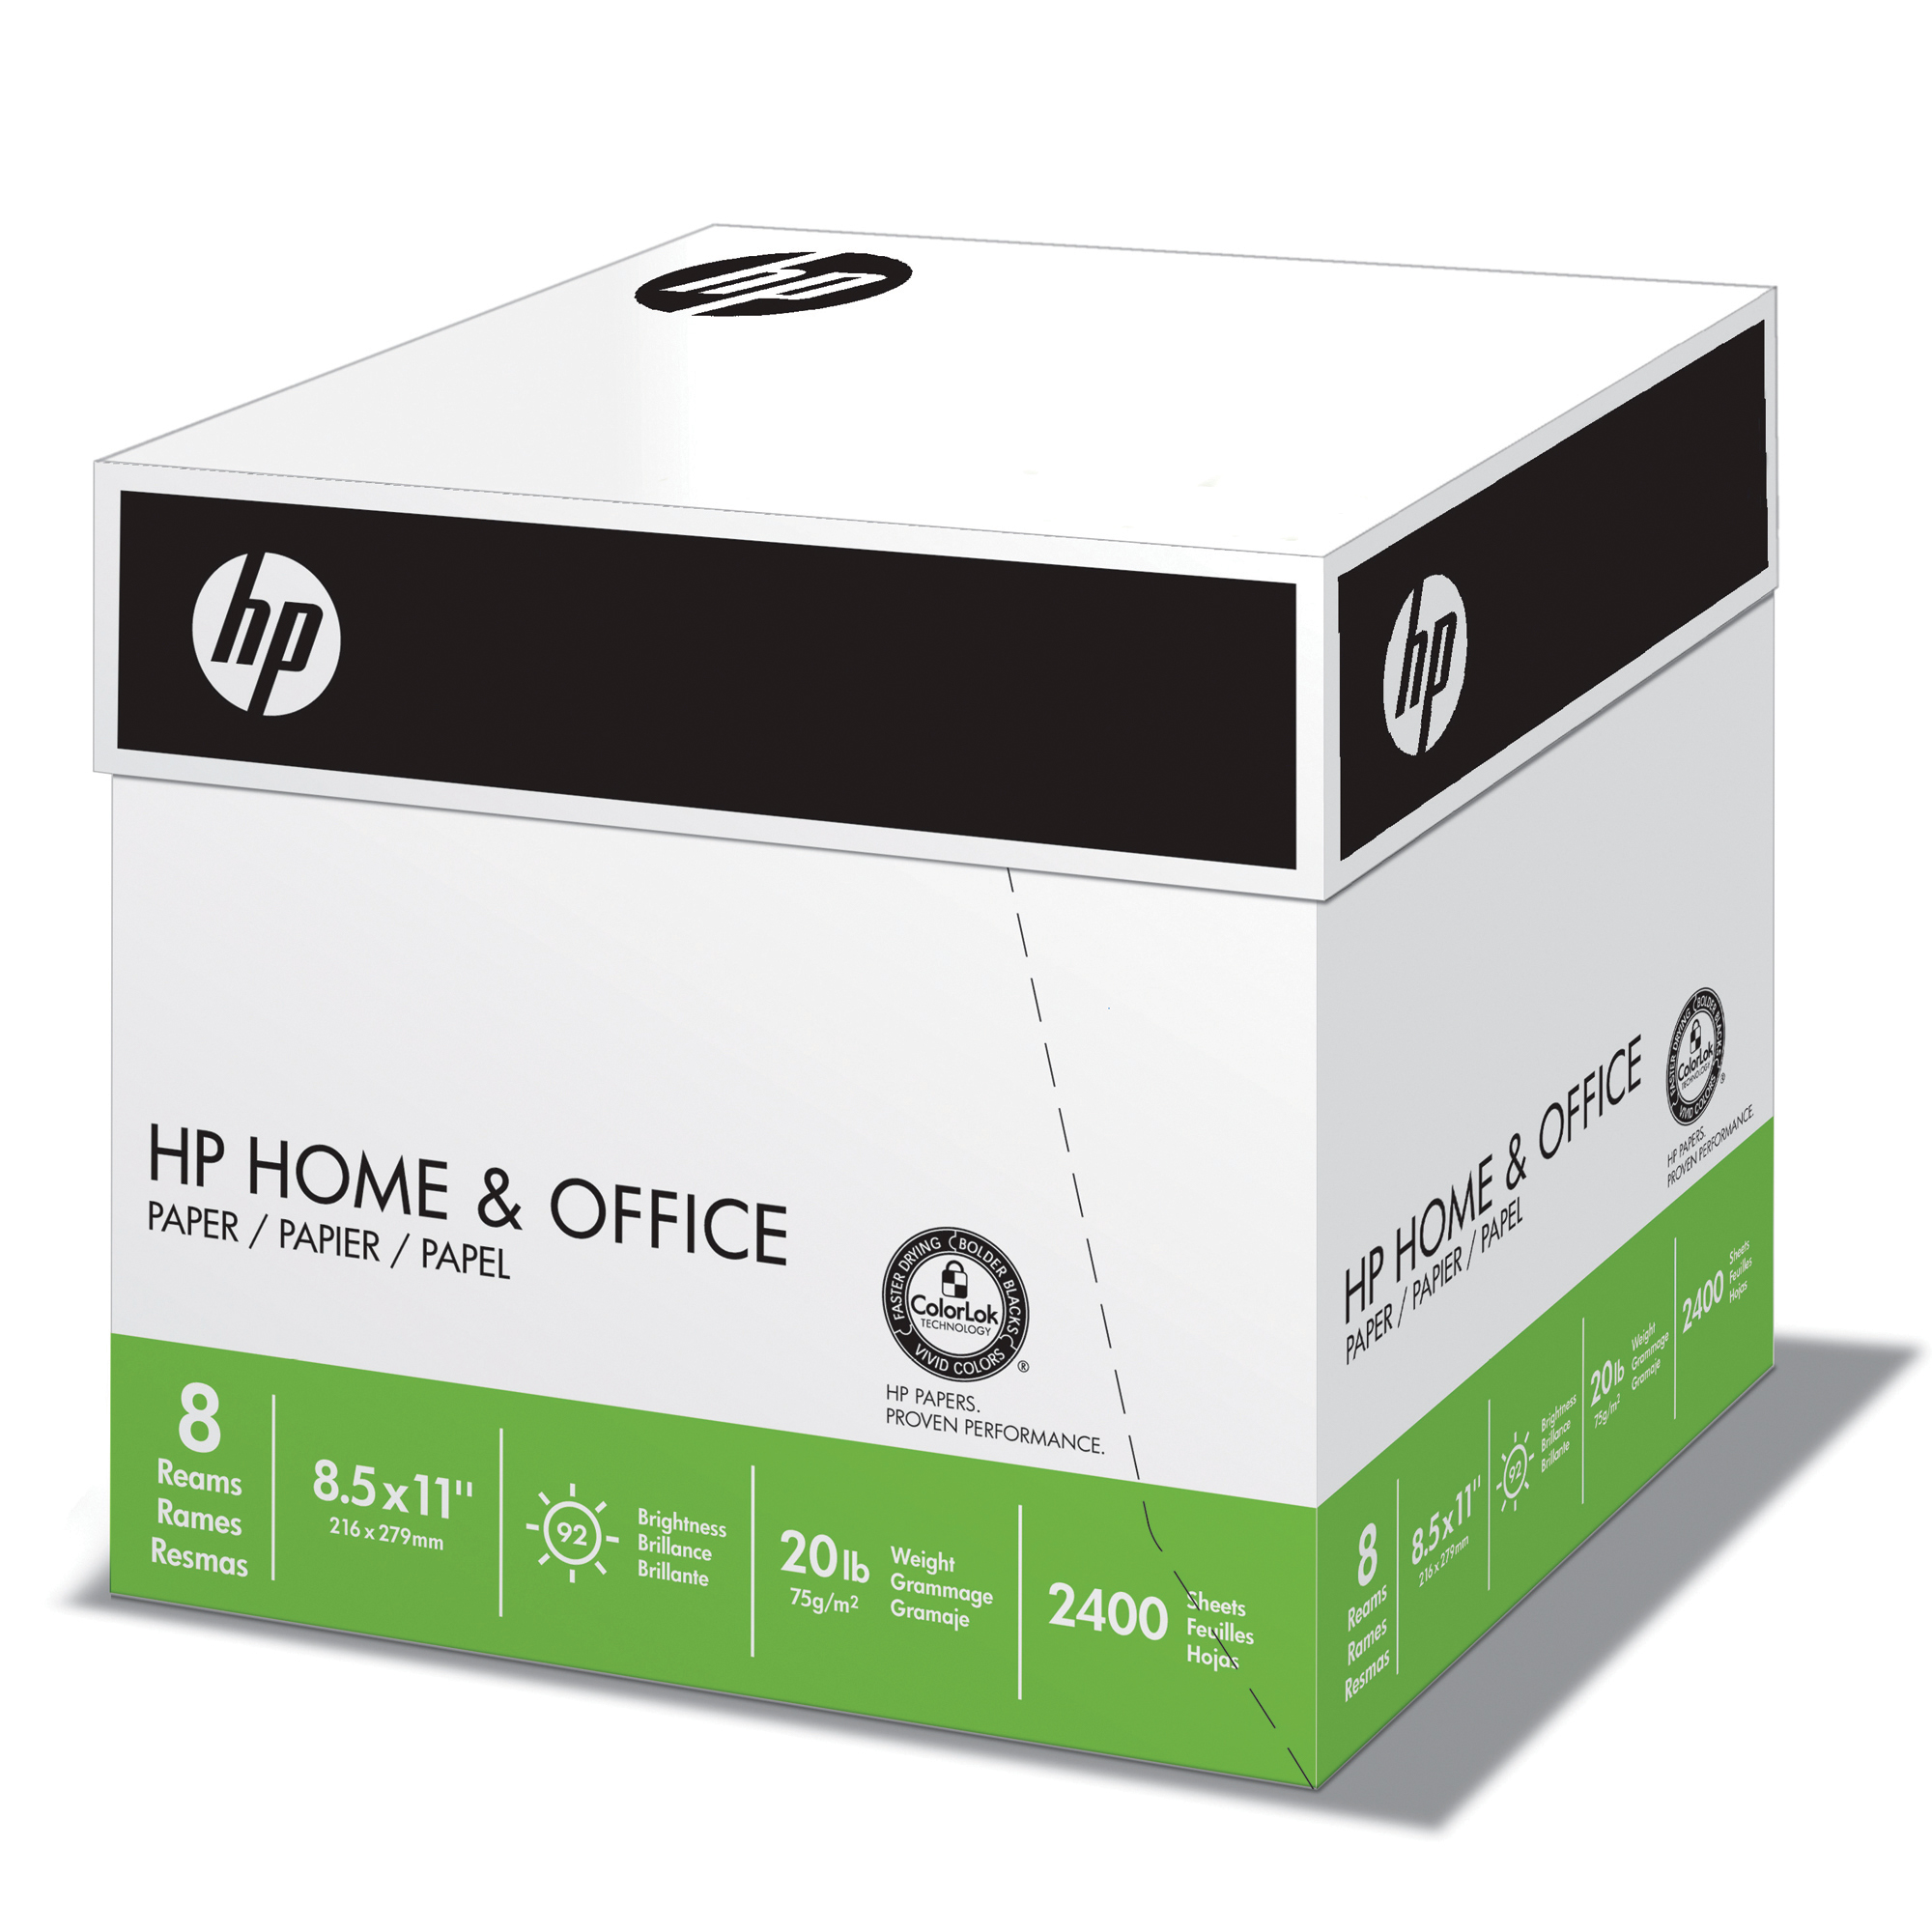 HP Paper, Home & Office Paper, 20lb, Letter, 92 Bright, 2400 Sheet / 8 Pack Case (200300C)